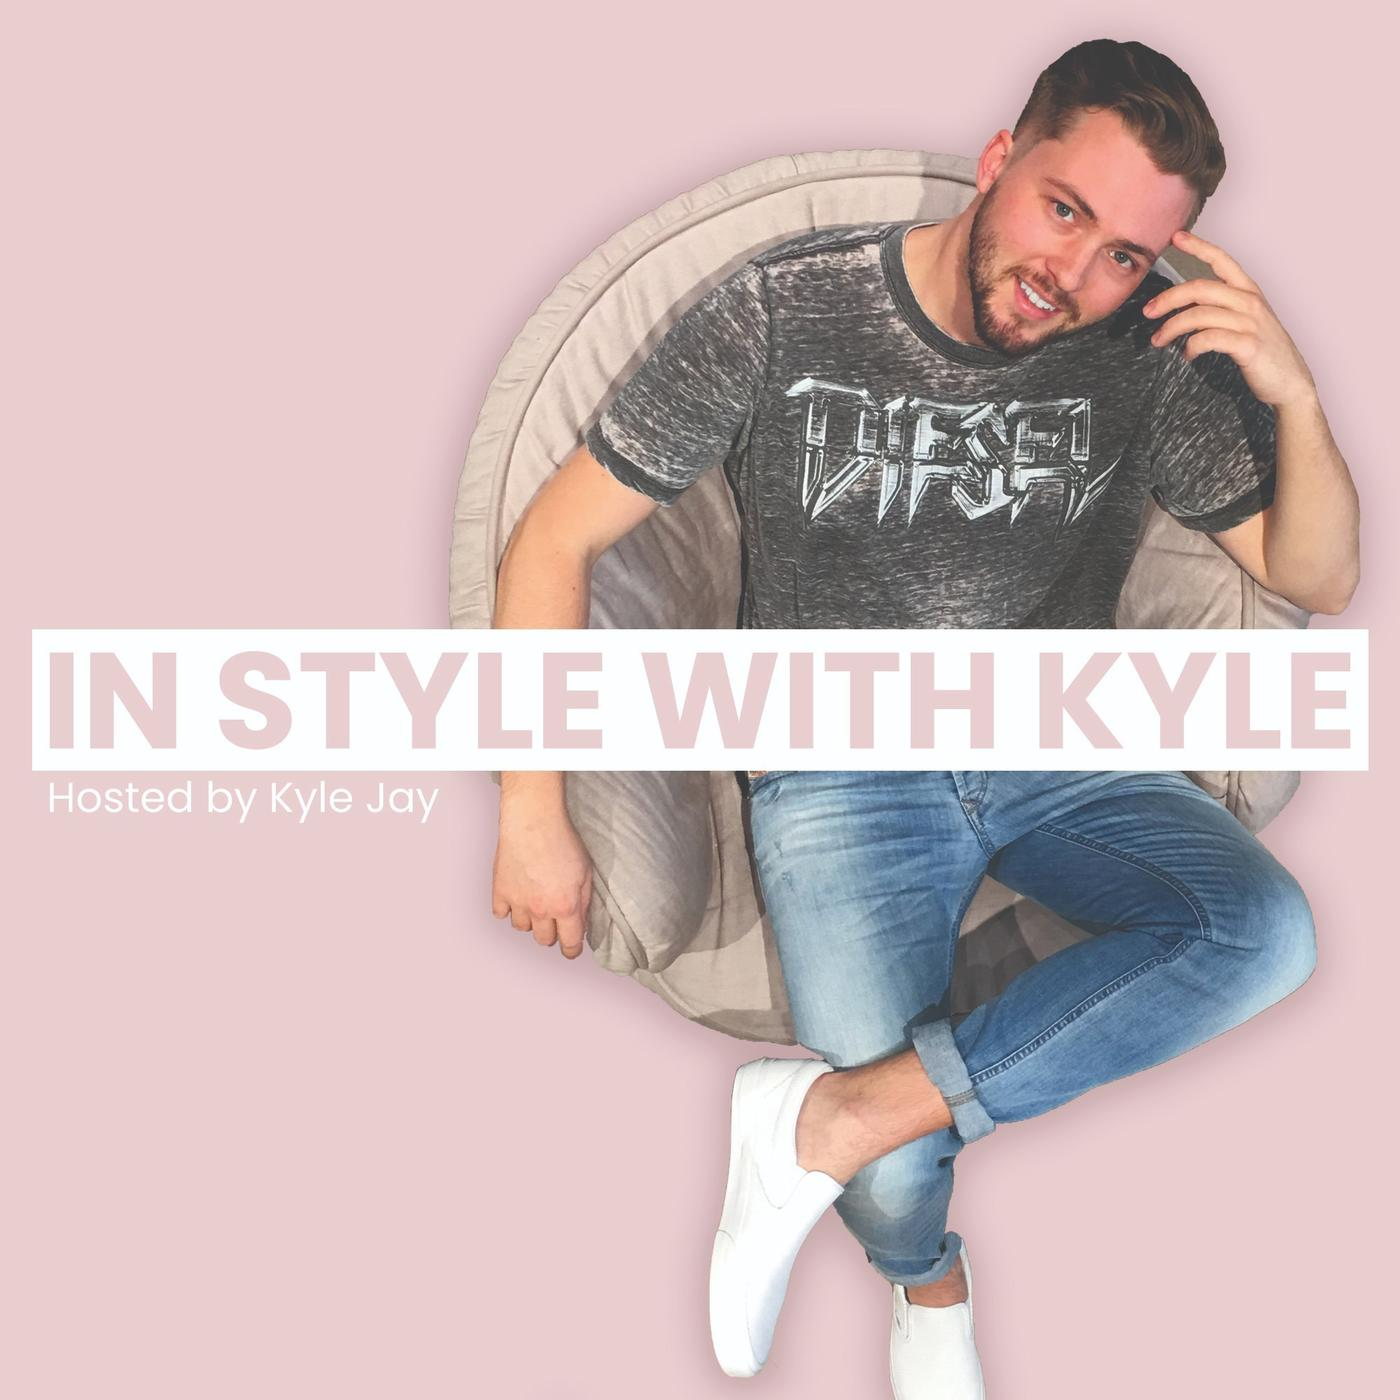 In Style With Kyle: The Podcast - Kyle Jay | Listen Notes